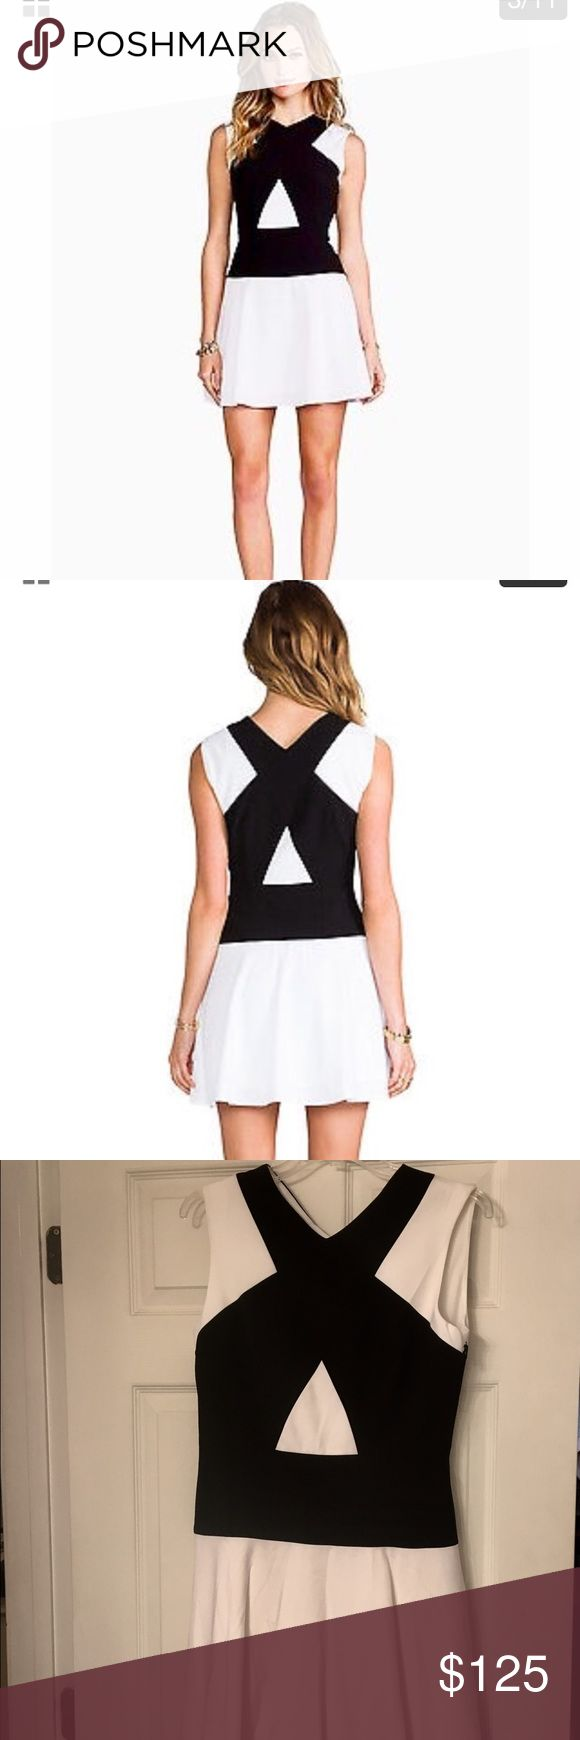 ⚫️Black and white mini dress⚫️ This dress speaks for itself. It's gorgeous and is perfect for many occasions. Brand new, never worn. Mint condition. Zips up the side. BCBGMaxAzria Dresses Mini